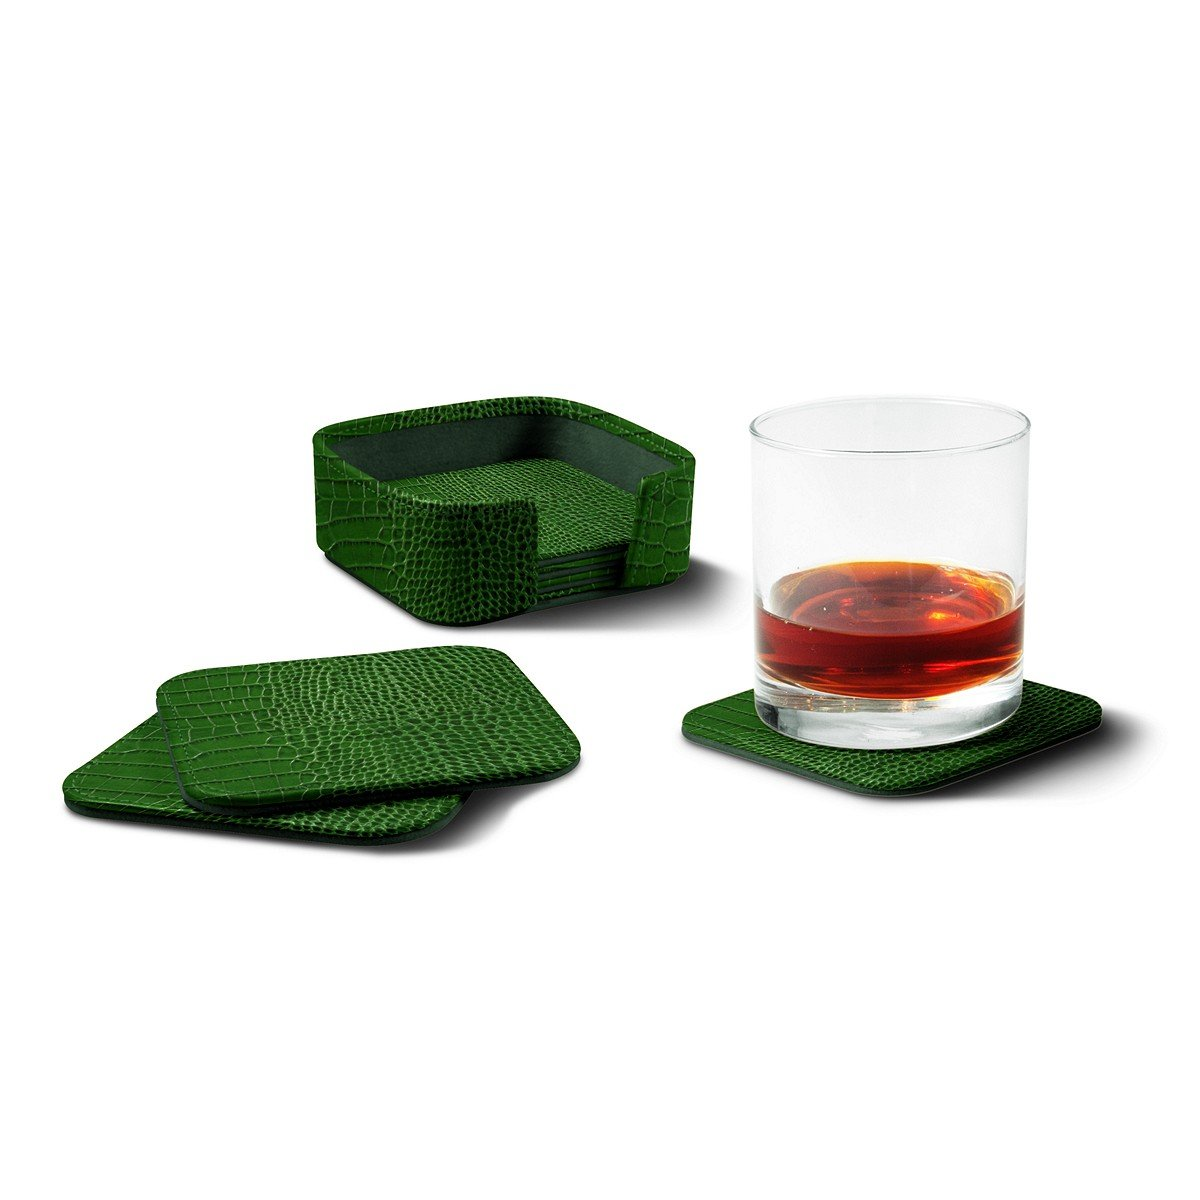 Lucrin - Set of 6 Square Genuine Leather Coasters with Coaster Holder - Light Green - Crocodile style calfskin